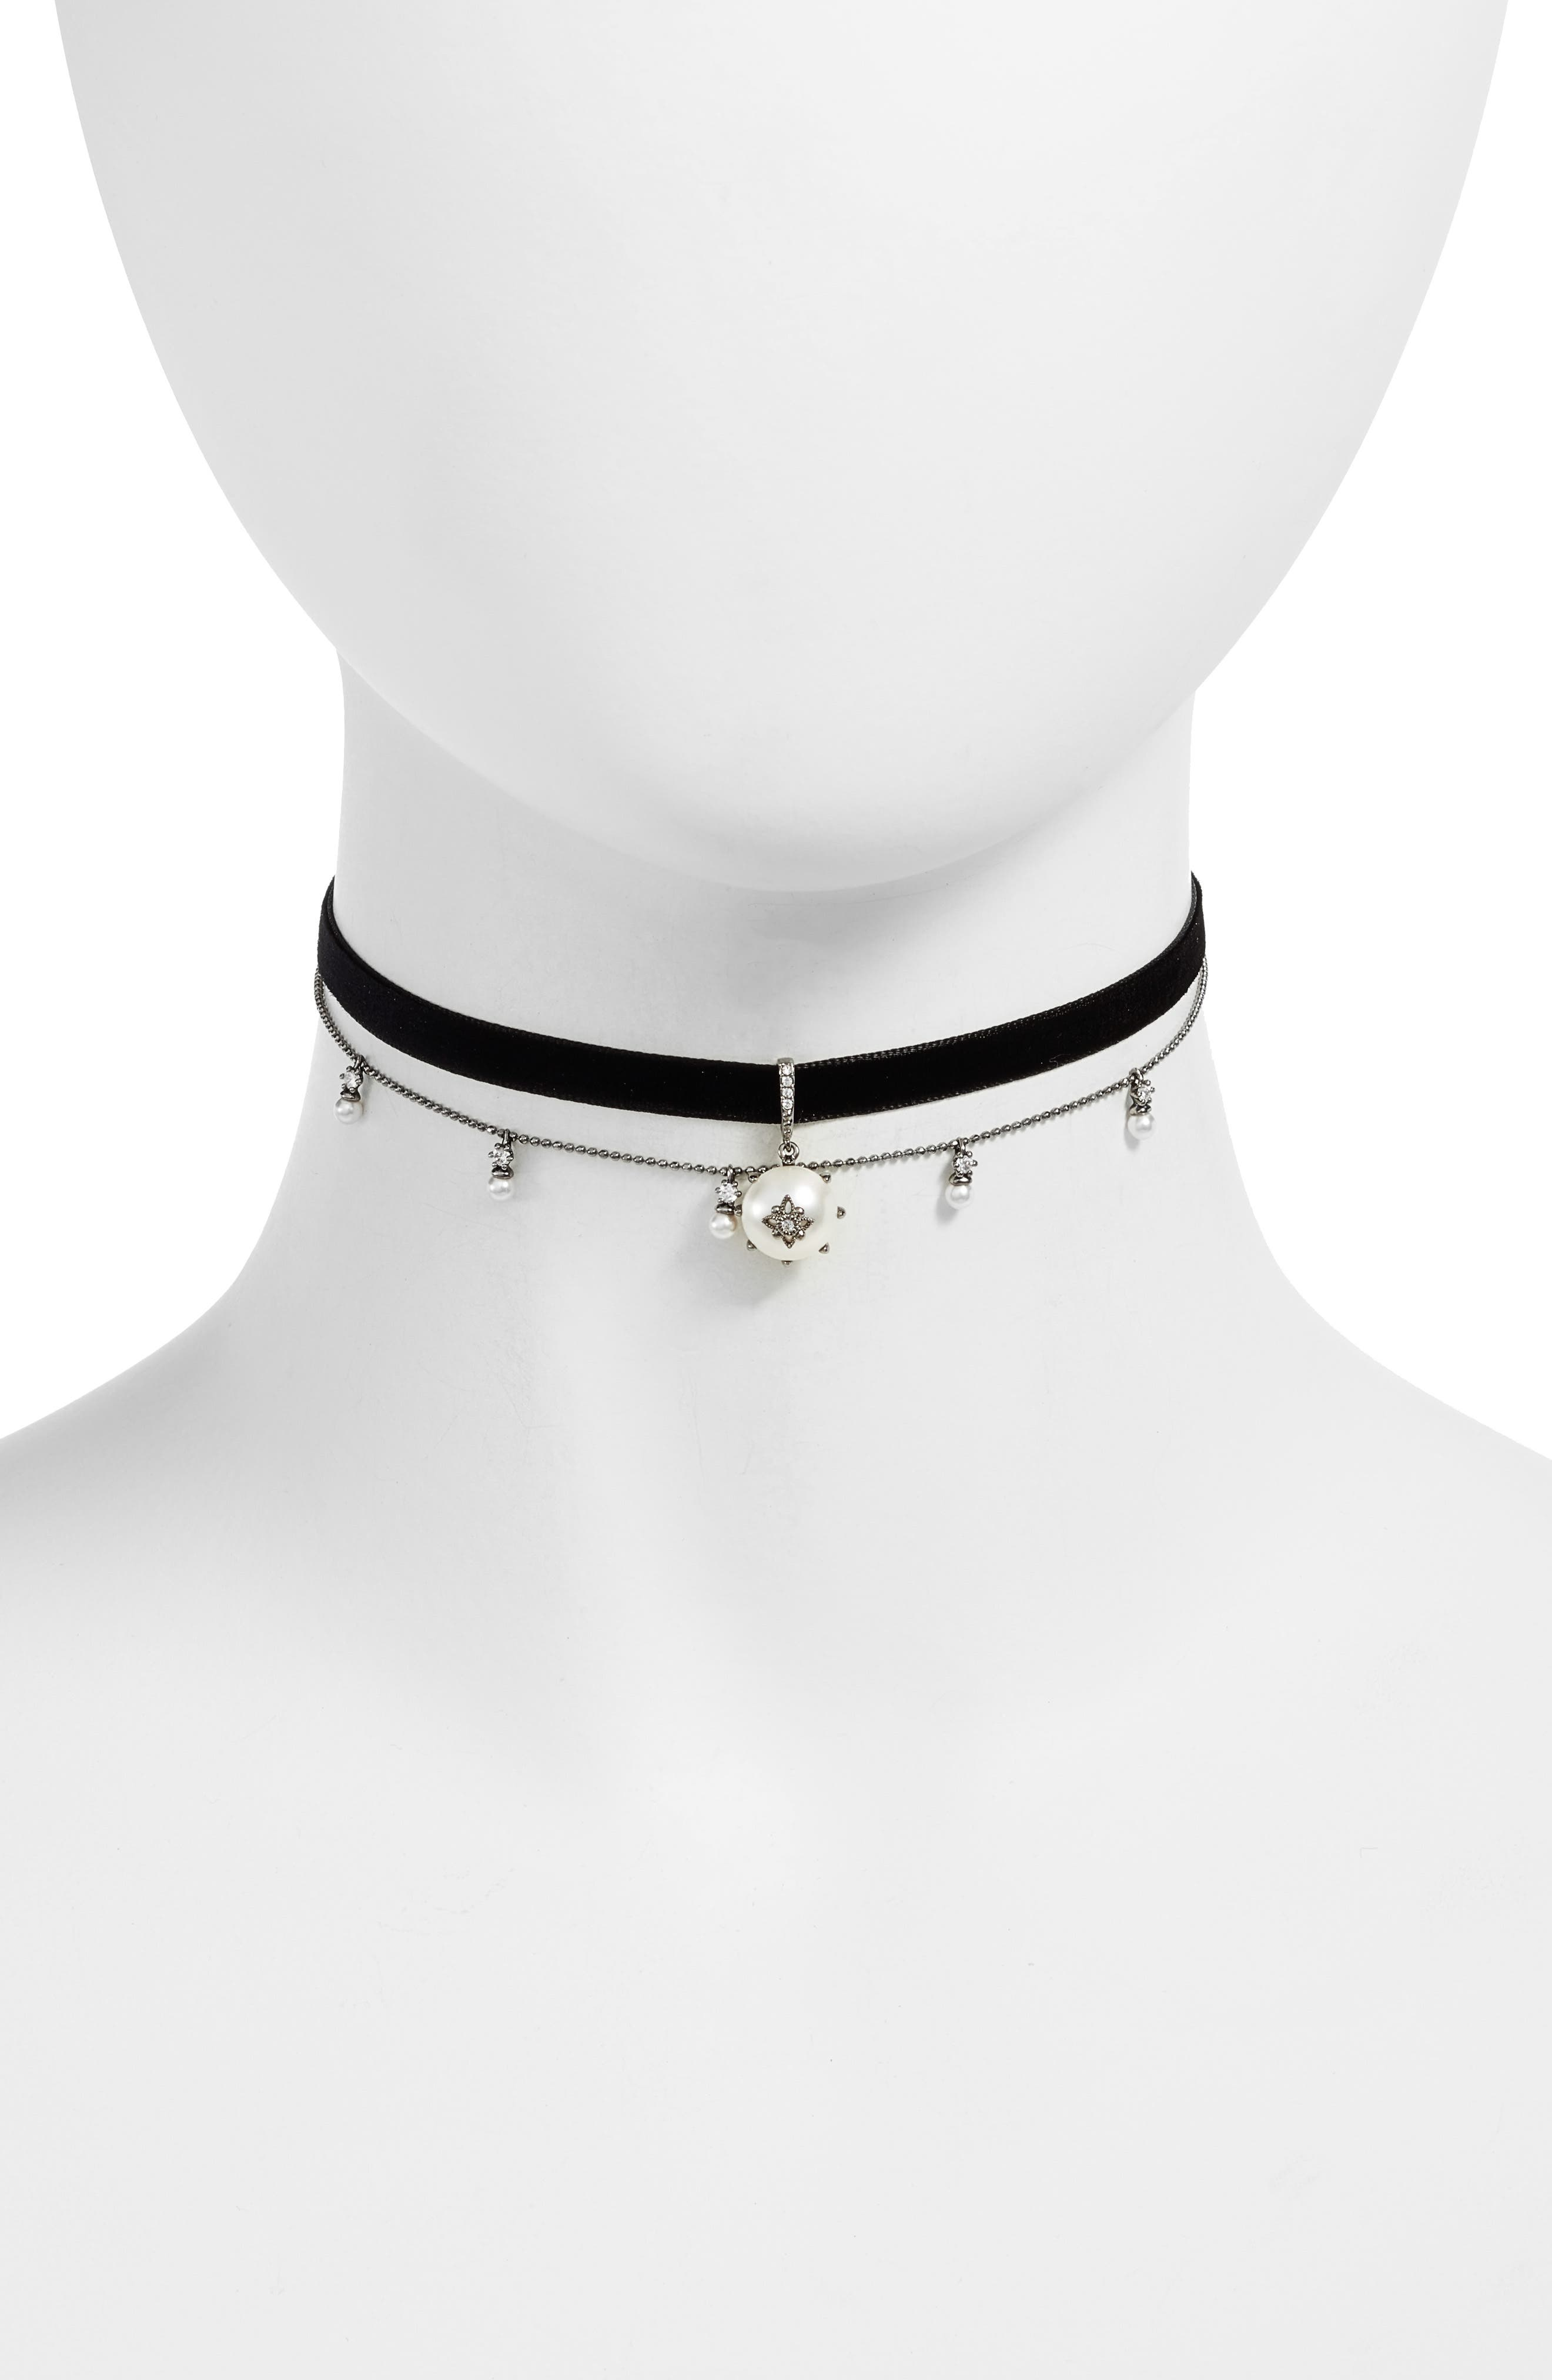 Coquette Faux Pearl Layered Choker Necklace,                         Main,                         color, Black